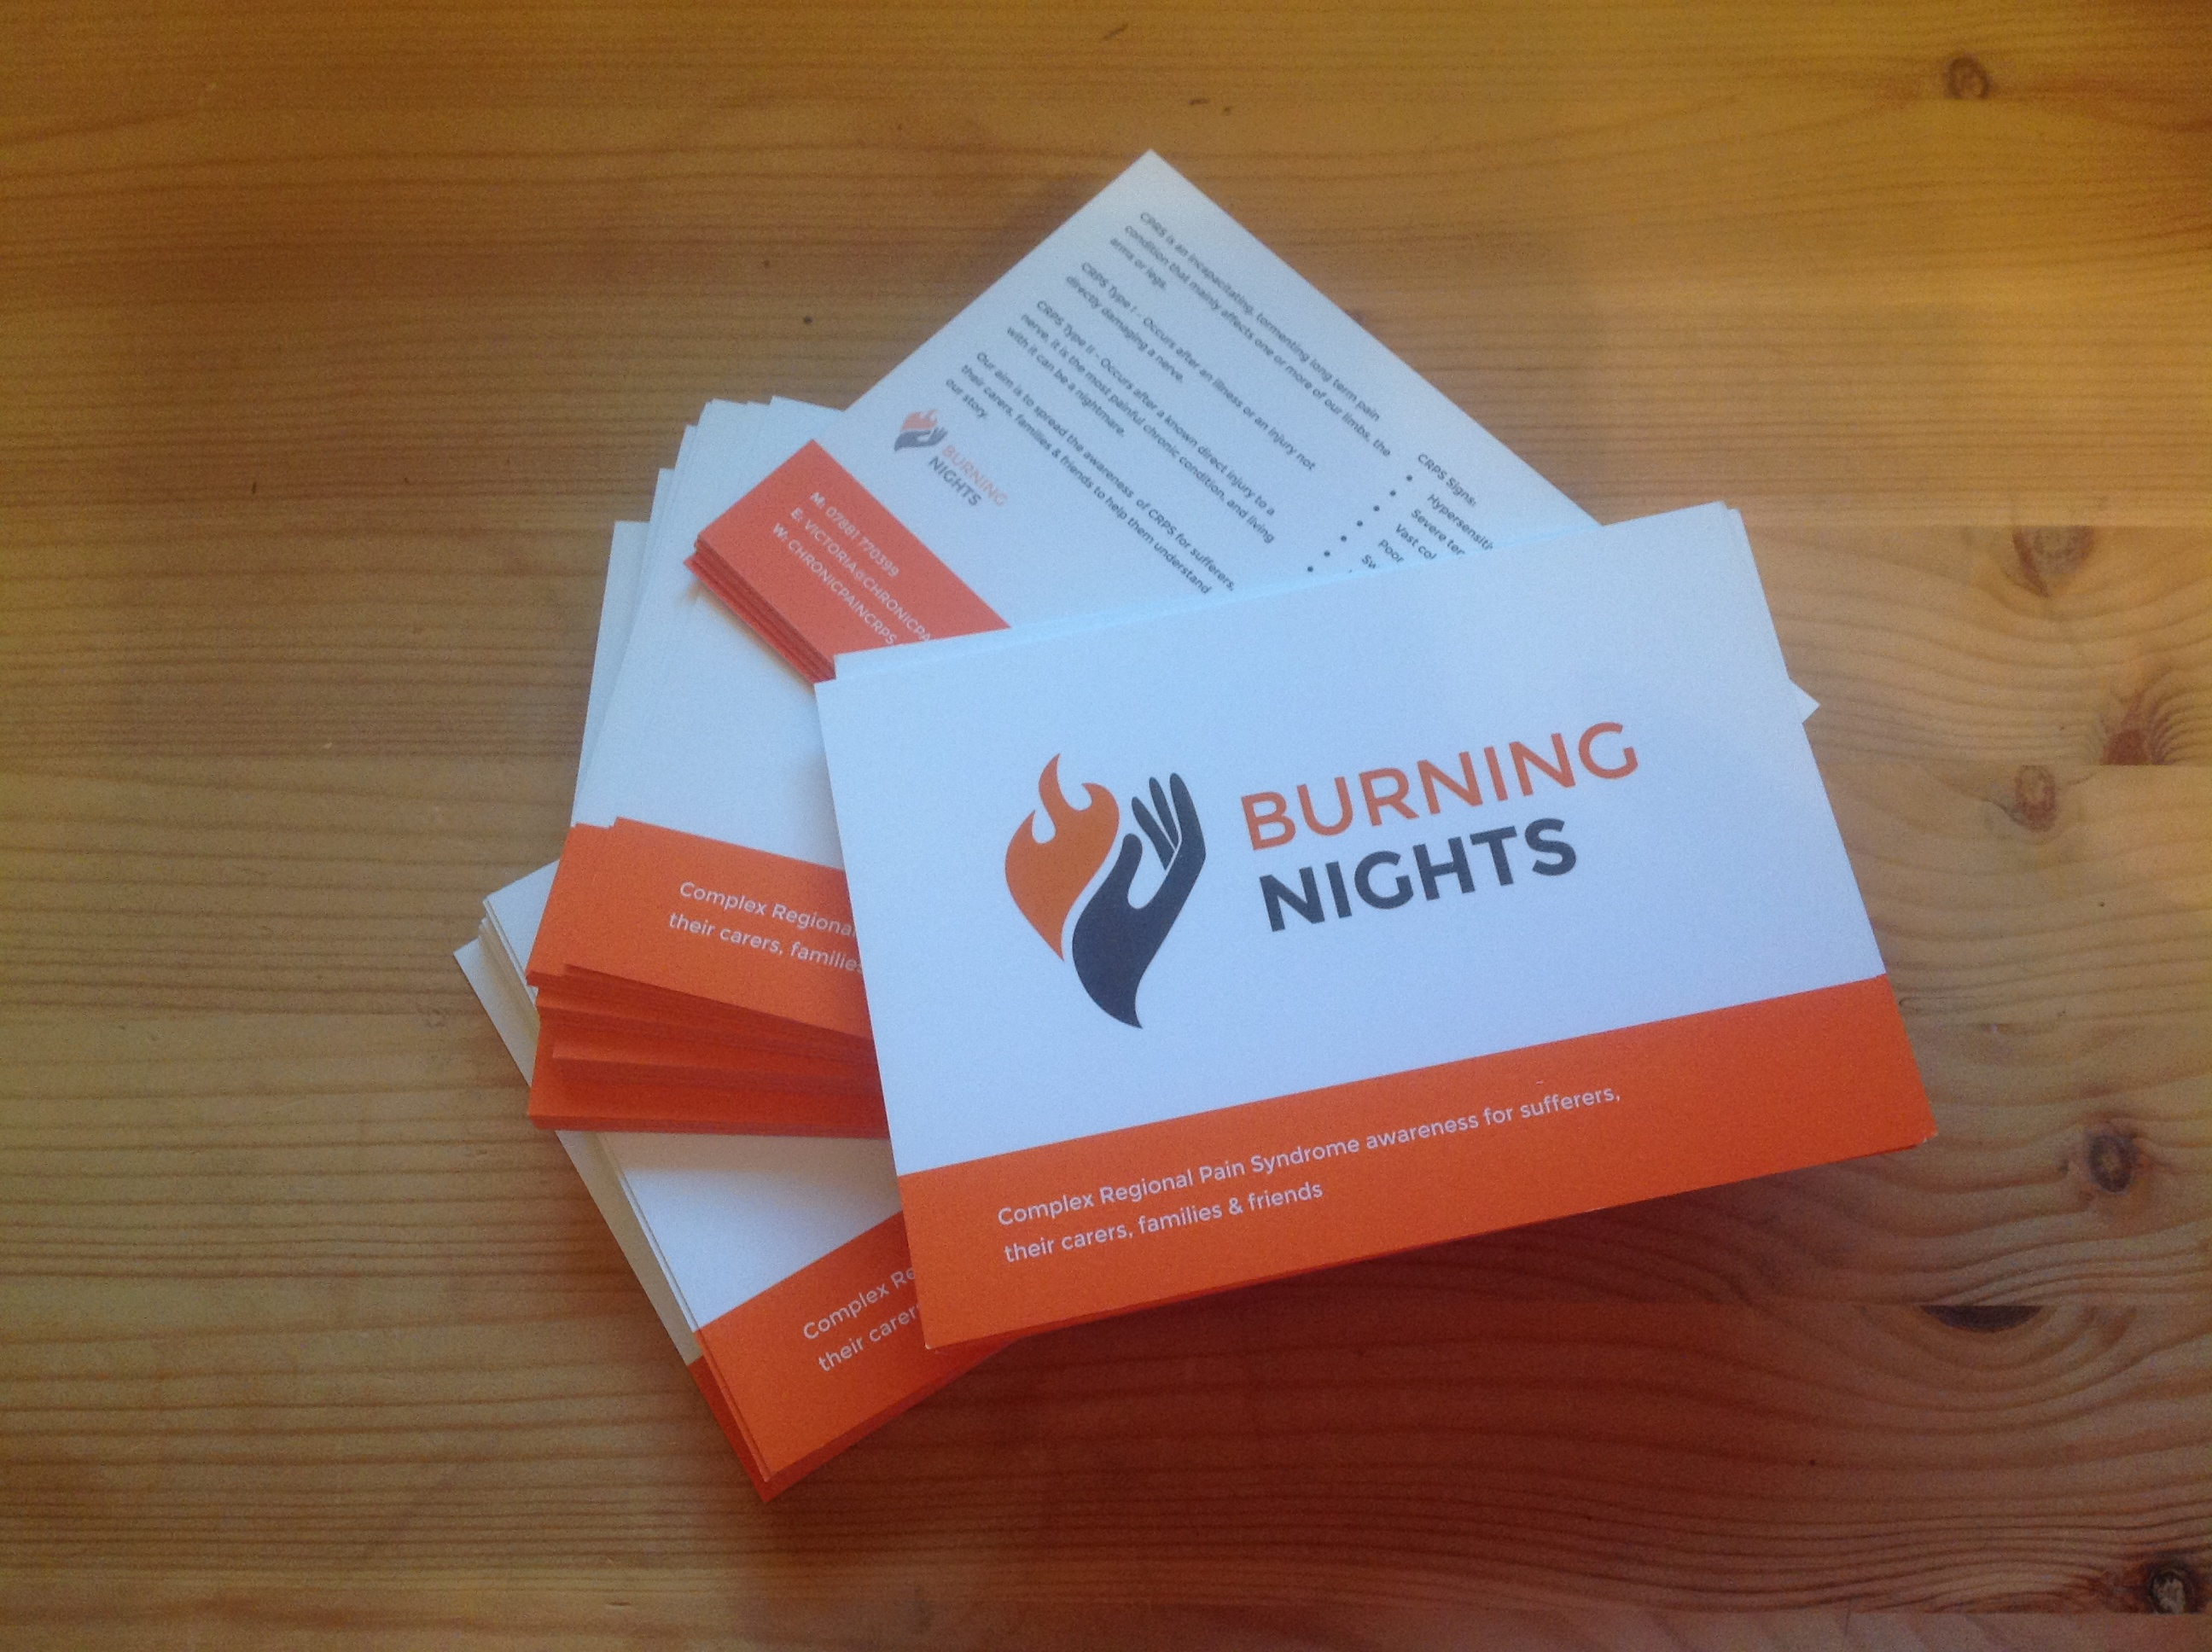 CRPS/RSD Awareness by Awareness Postcards